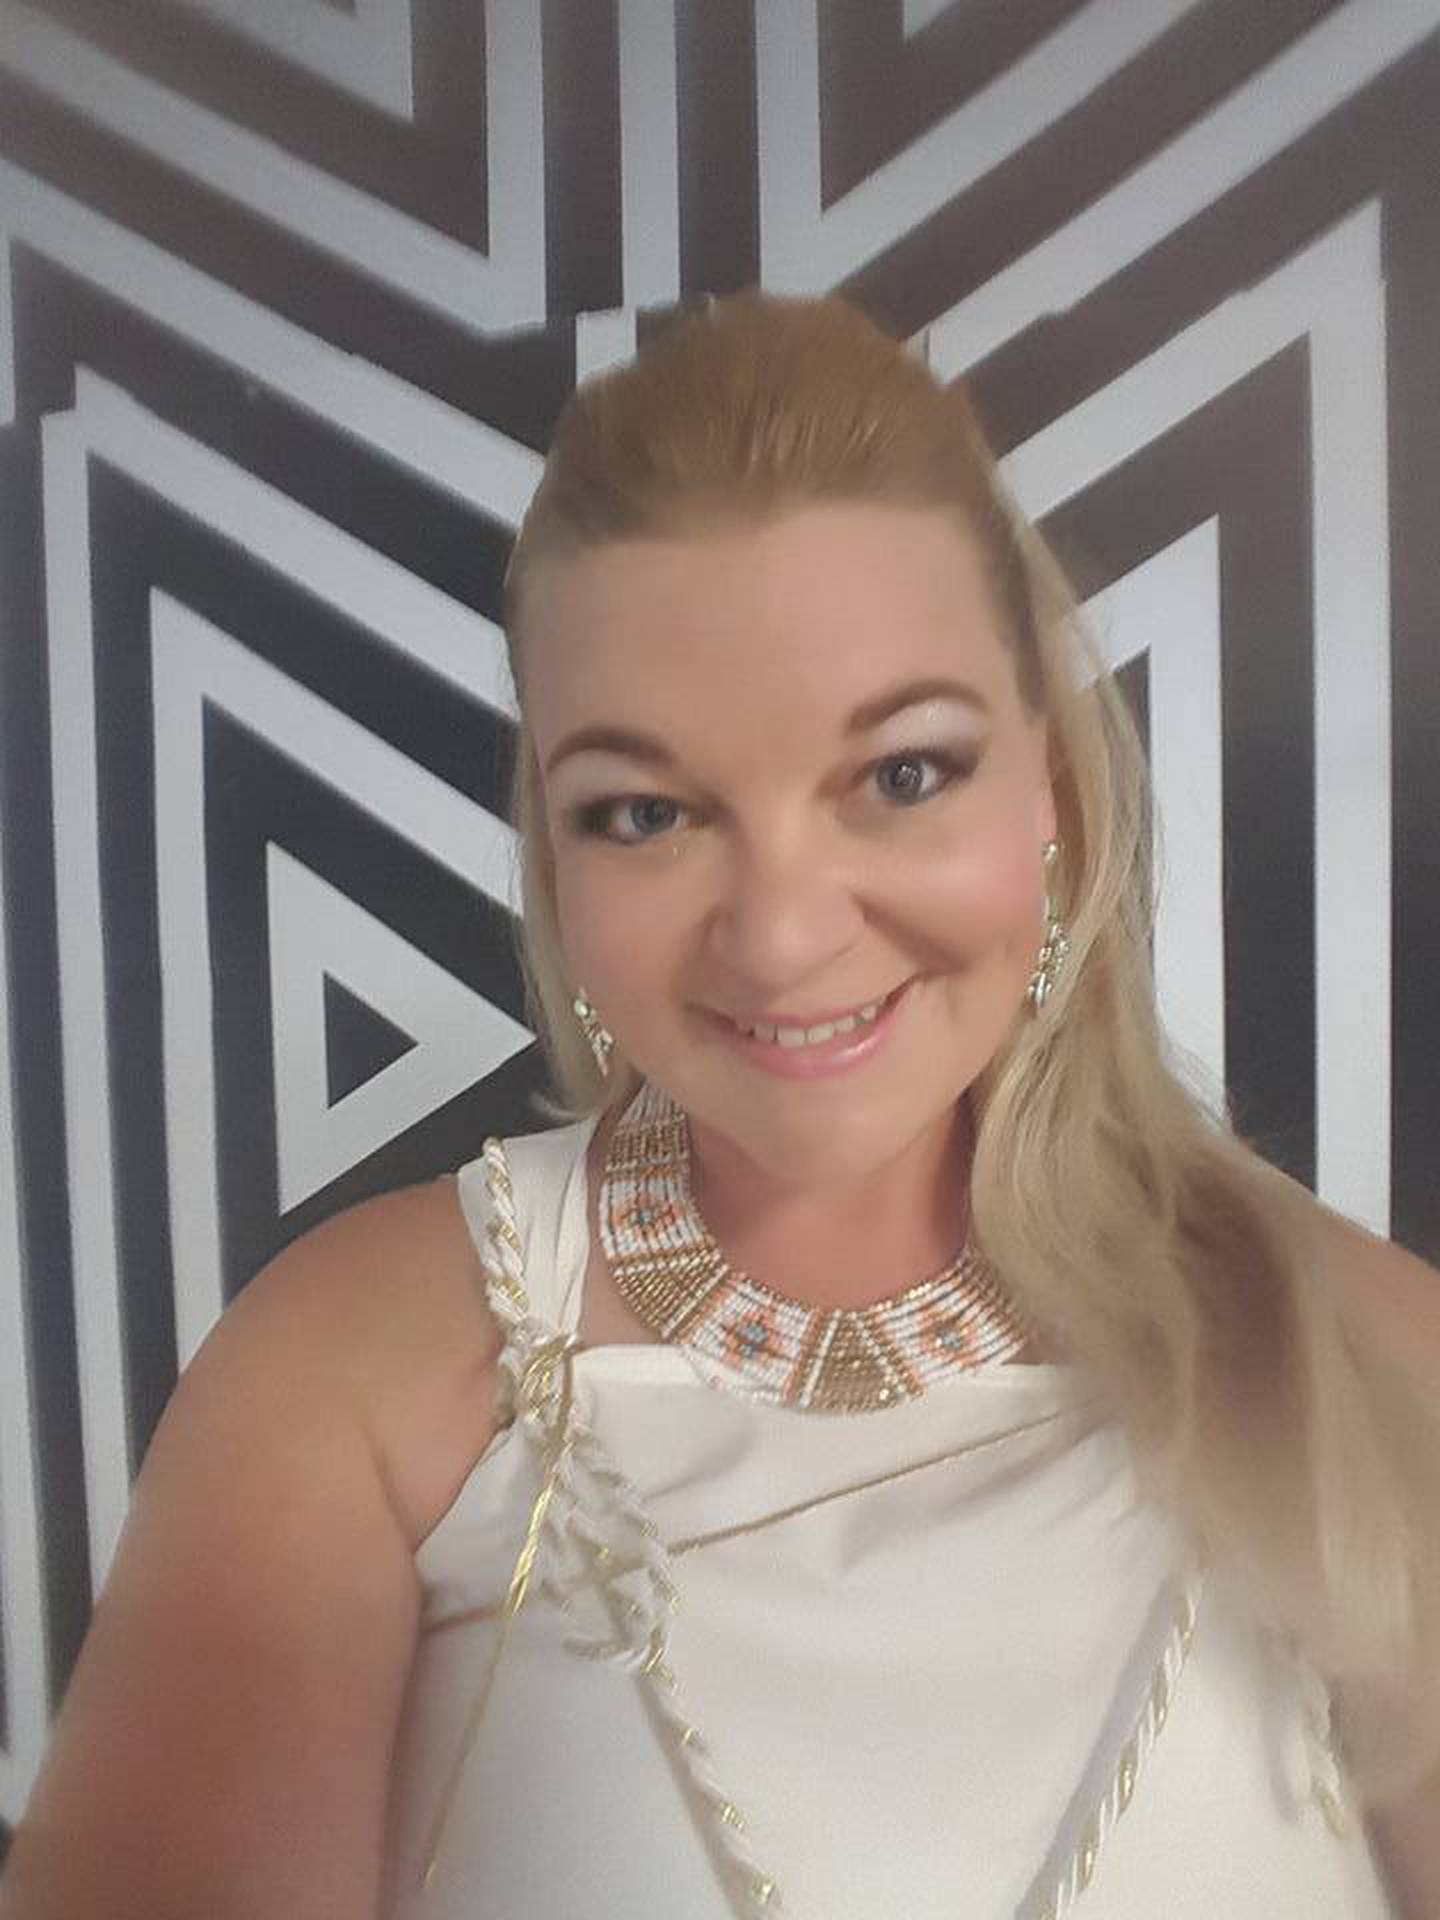 Keri Harper, now 41, performs with Taupo-based cover band Missy & the Jets and also owns her own design company, Pickle Design. Photo / Facebook / Missy & the Jets